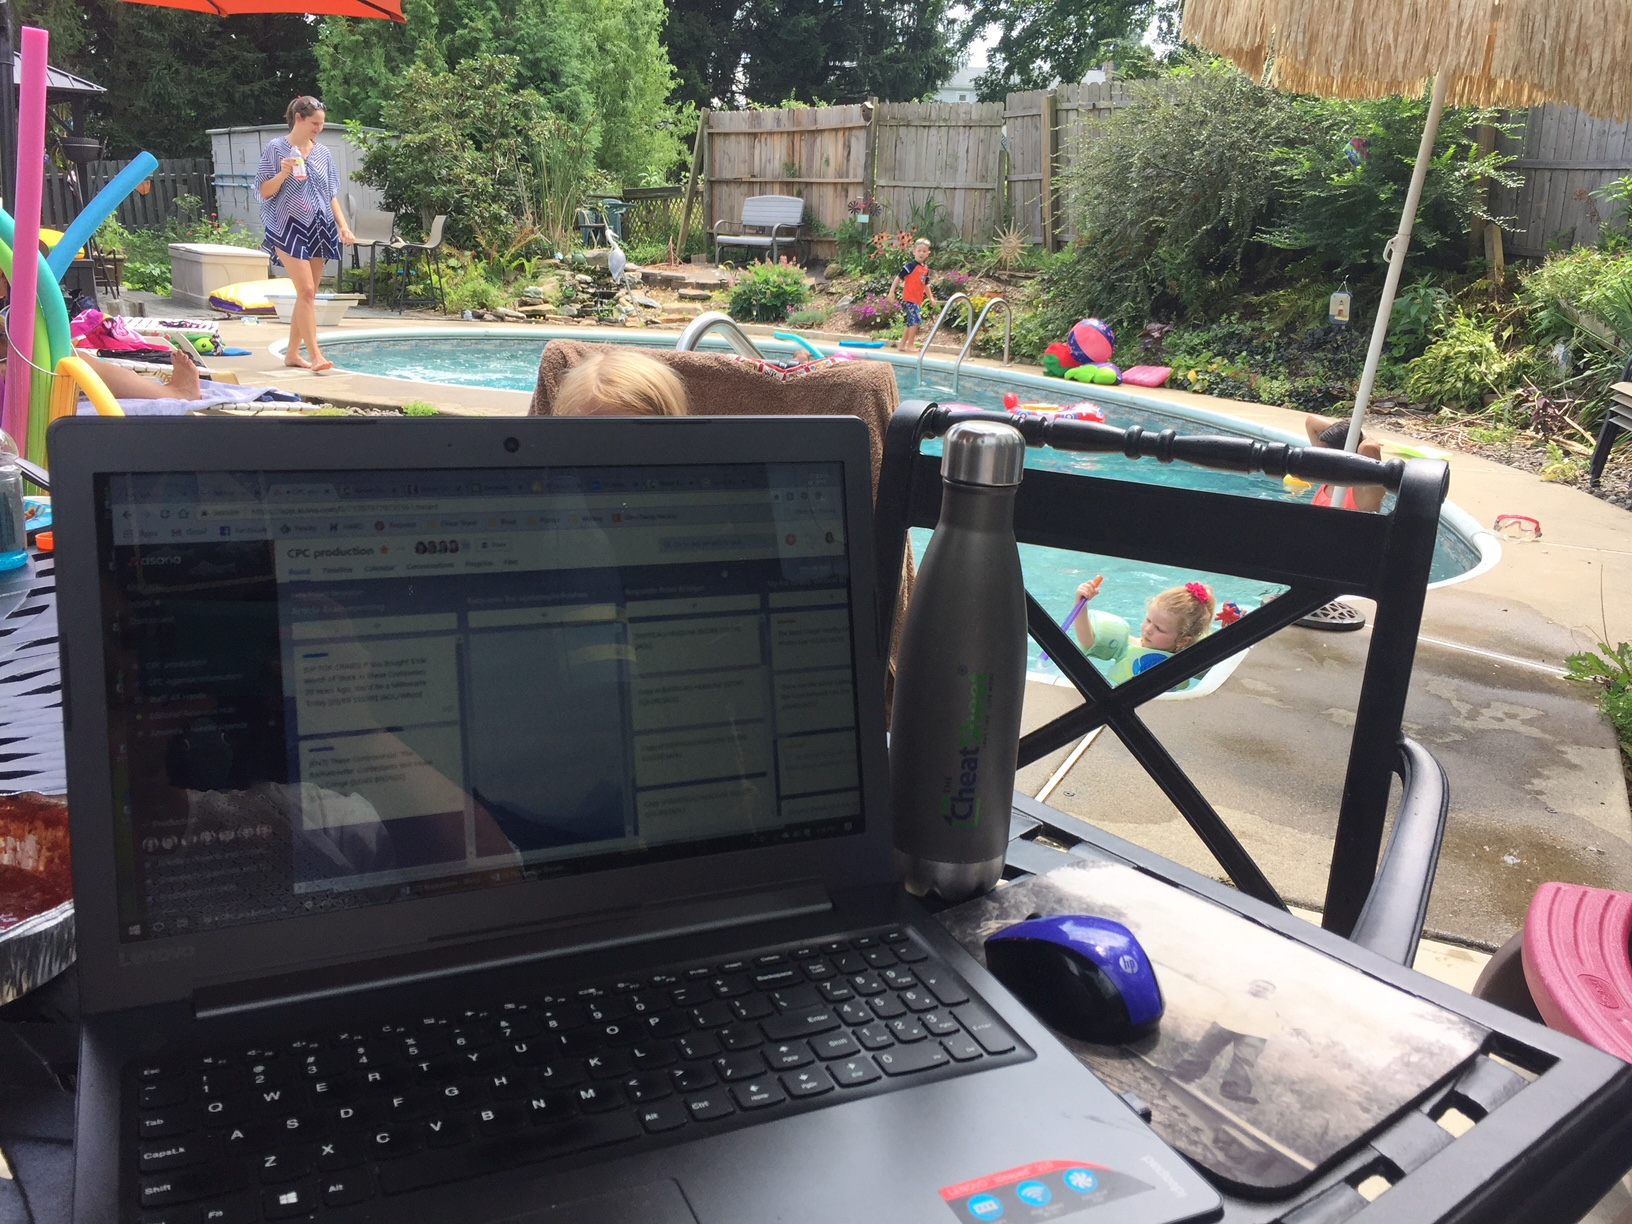 Who complains about working poolside? I guess I do.